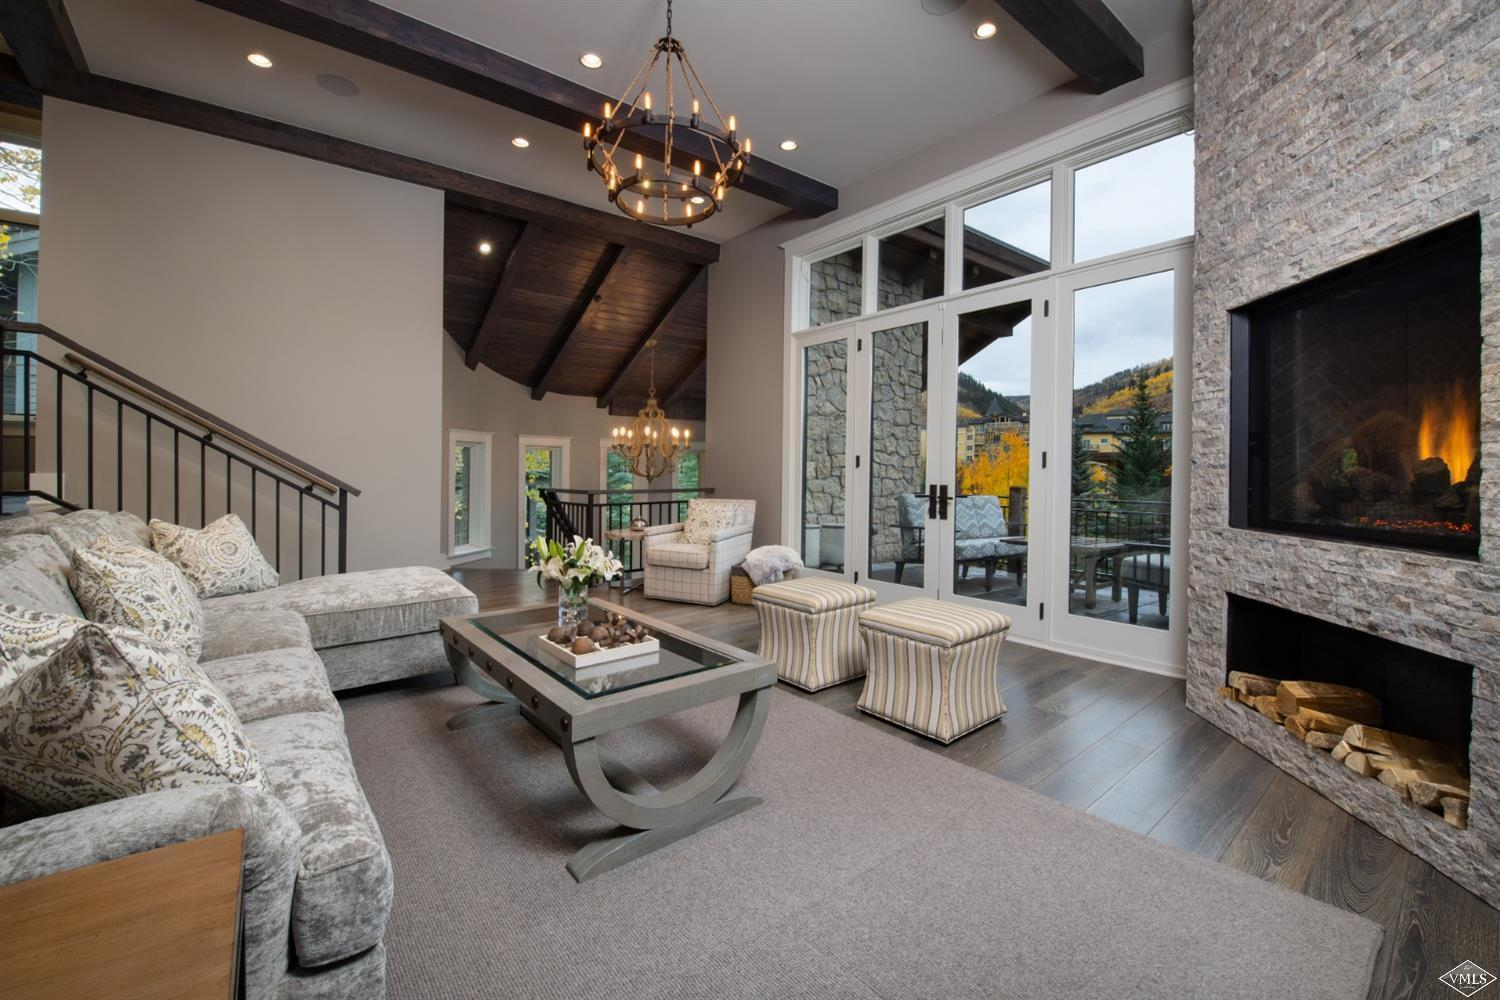 The ultimate in new Vail construction, stately 716 Forest Road exudes elegance with top of the line modern finishes and features at one of Vail's most prestigious addresses. Beautiful aspen grove views from a grand 6-bedroom, 6.5-bath plus den residence. It truly is an awe-inspiring home that is ideal for entertaining and impressing with 5,163+/- sq.ft. State of the art technology. Now with full Arrabelle membership included!